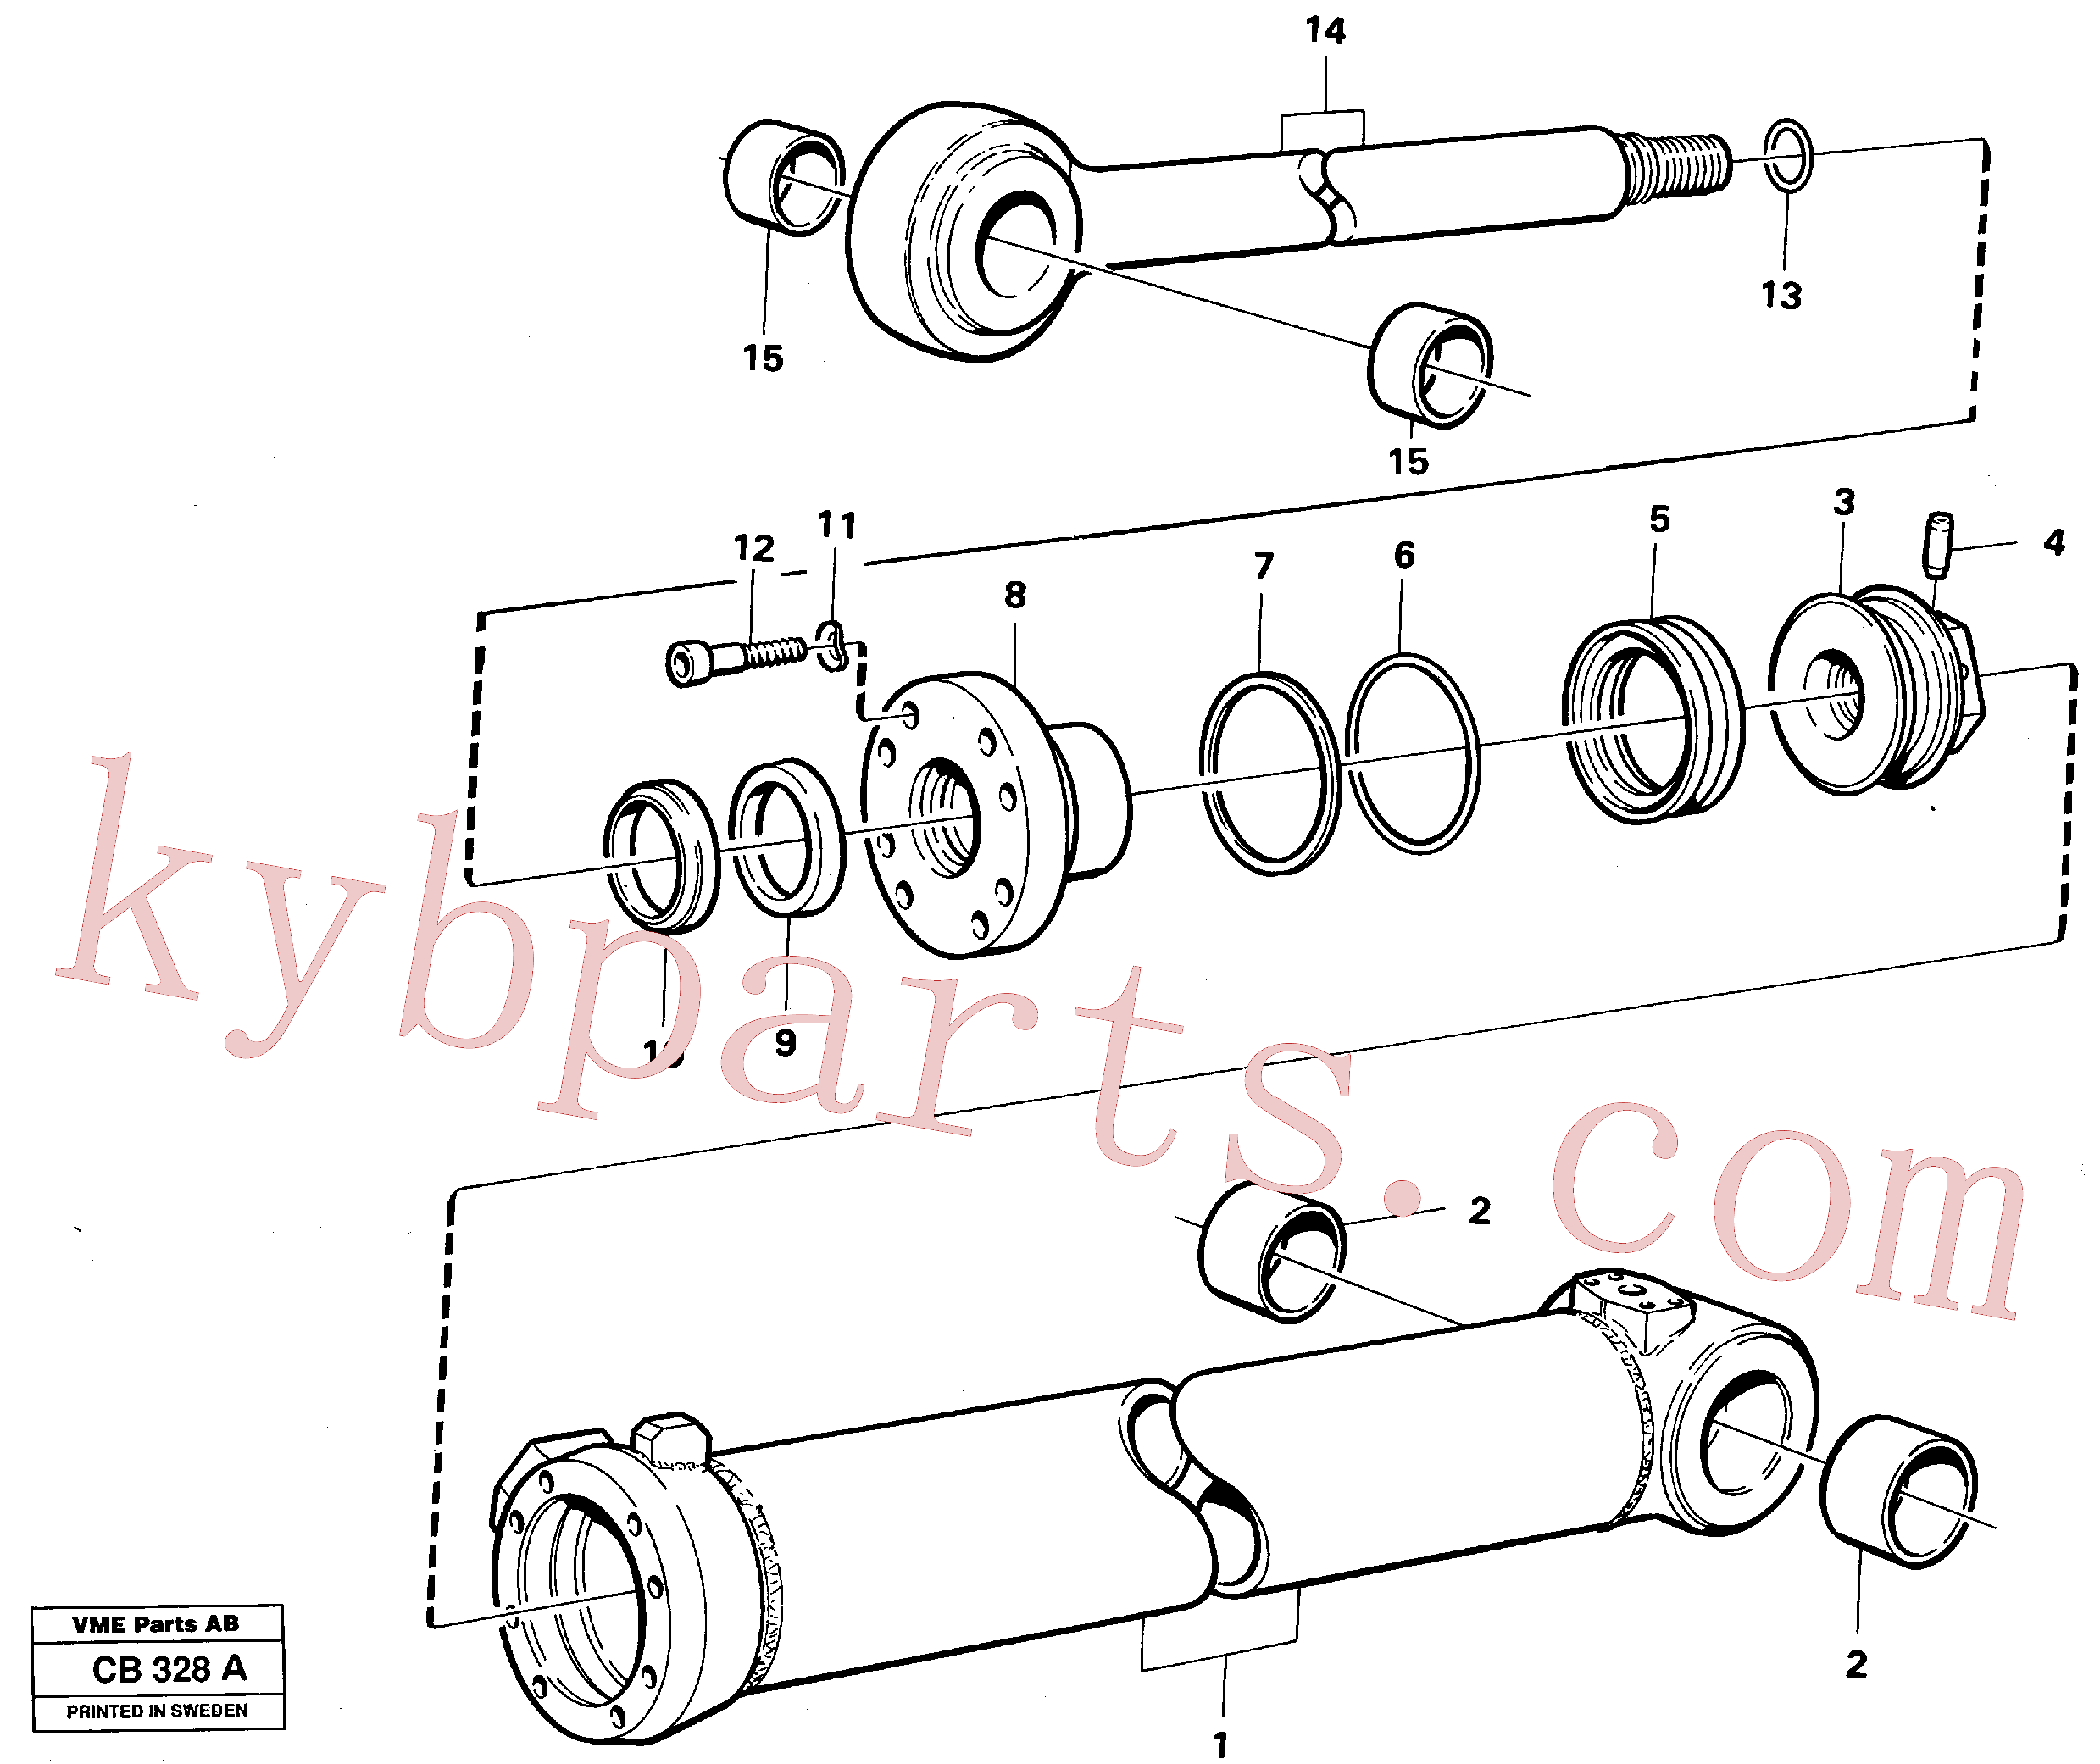 VOE4784843 for Volvo Extendable dipper cylinder(CB328A assembly)